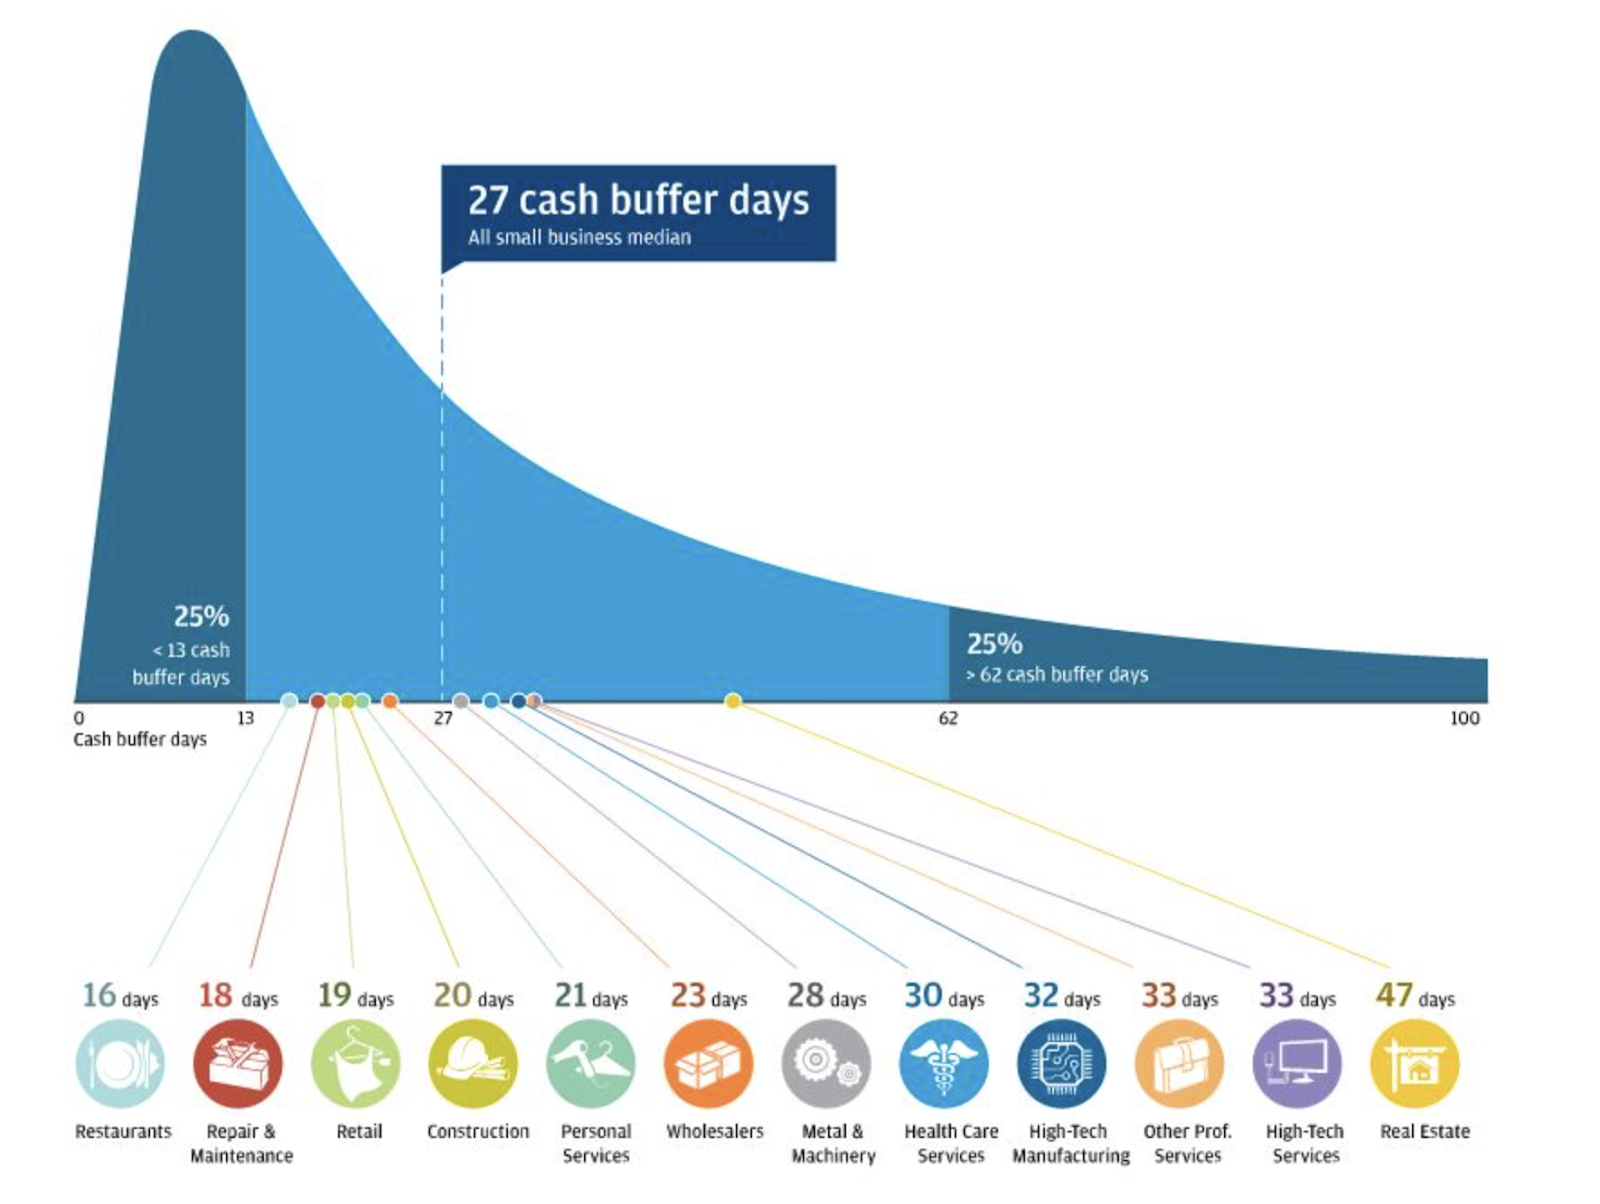 Chart showing that small businesses have a median of 27 cash buffer days